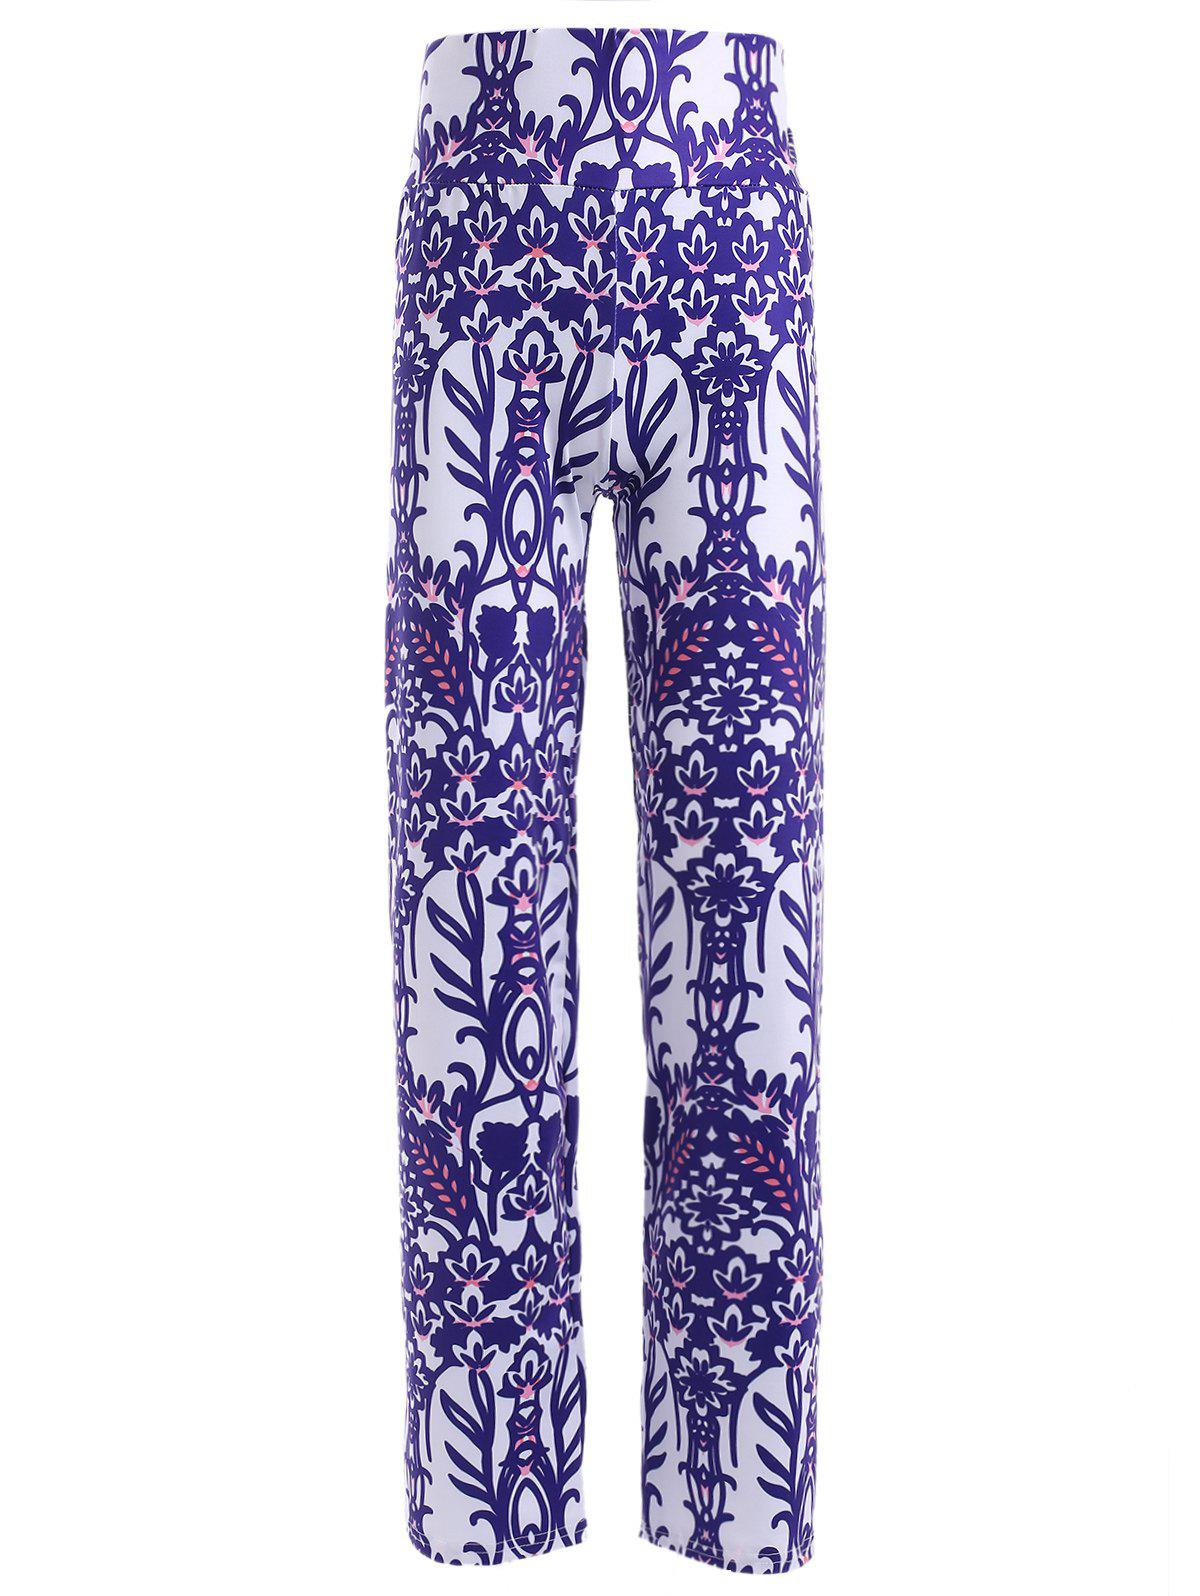 Casual Women's Elastic Waist Multi Pattern Print Pants - BRIGHT BLUE ONE SIZE(FIT SIZE XS TO M)